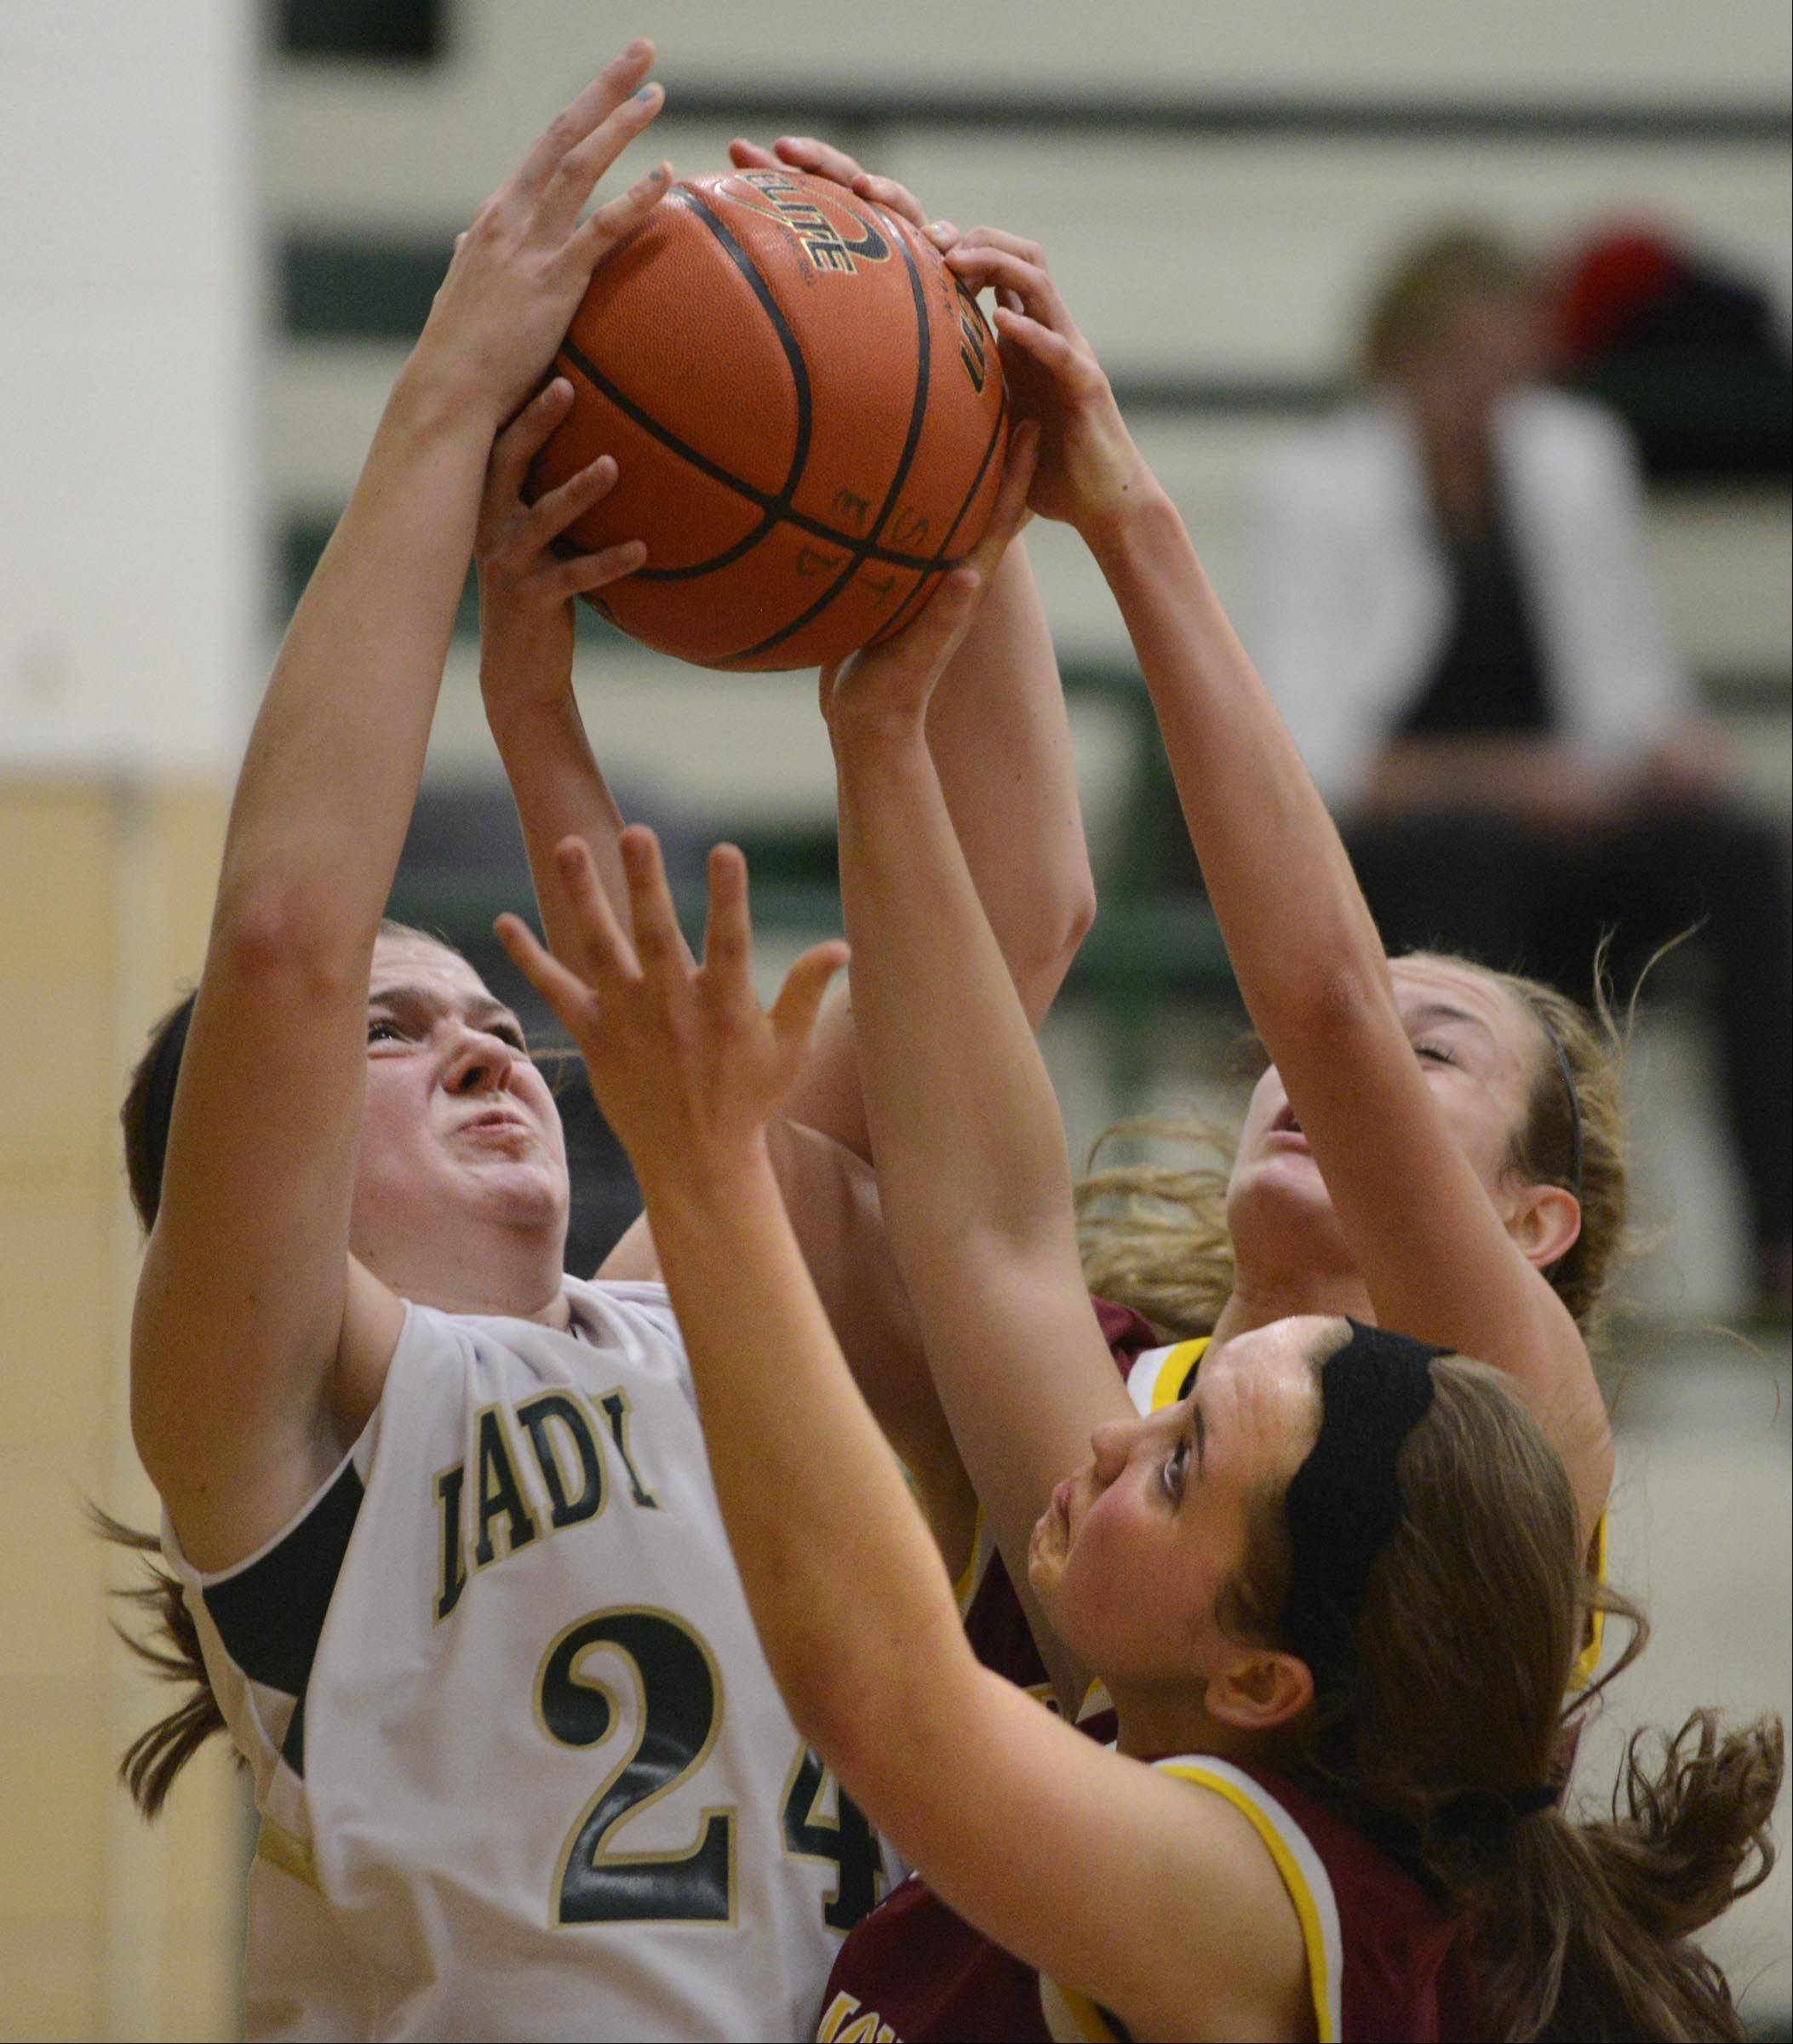 St. Edward's Katie Swanson fights for a rebound against Westmont's Rachel Kirt and Annie Carlon Tuesday in Elgin.